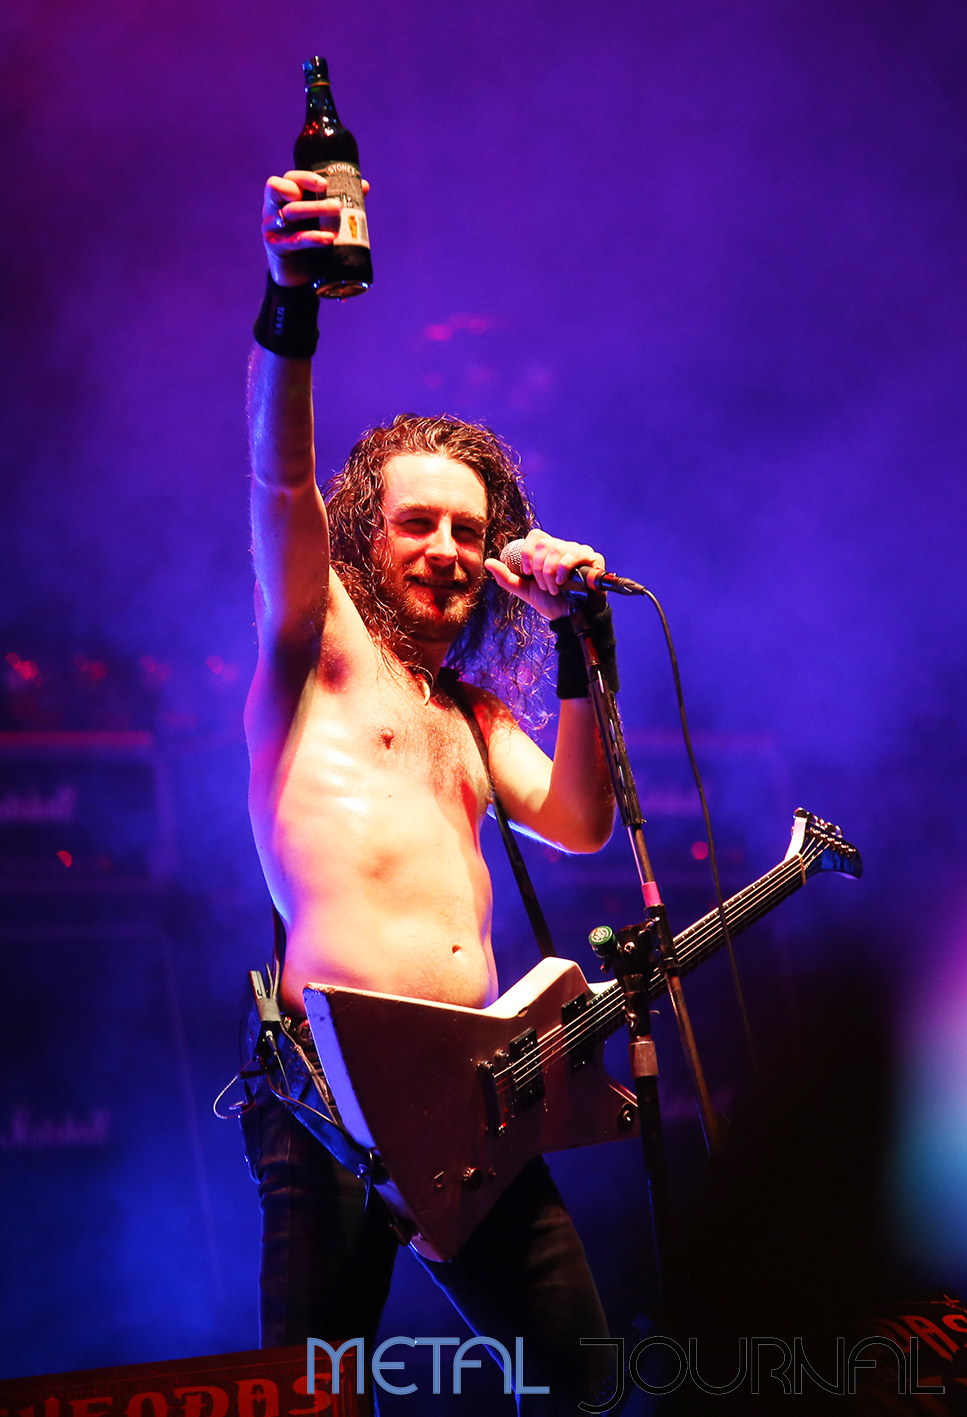 airbourne - leyendas del rock 2019 metal journal pic 7